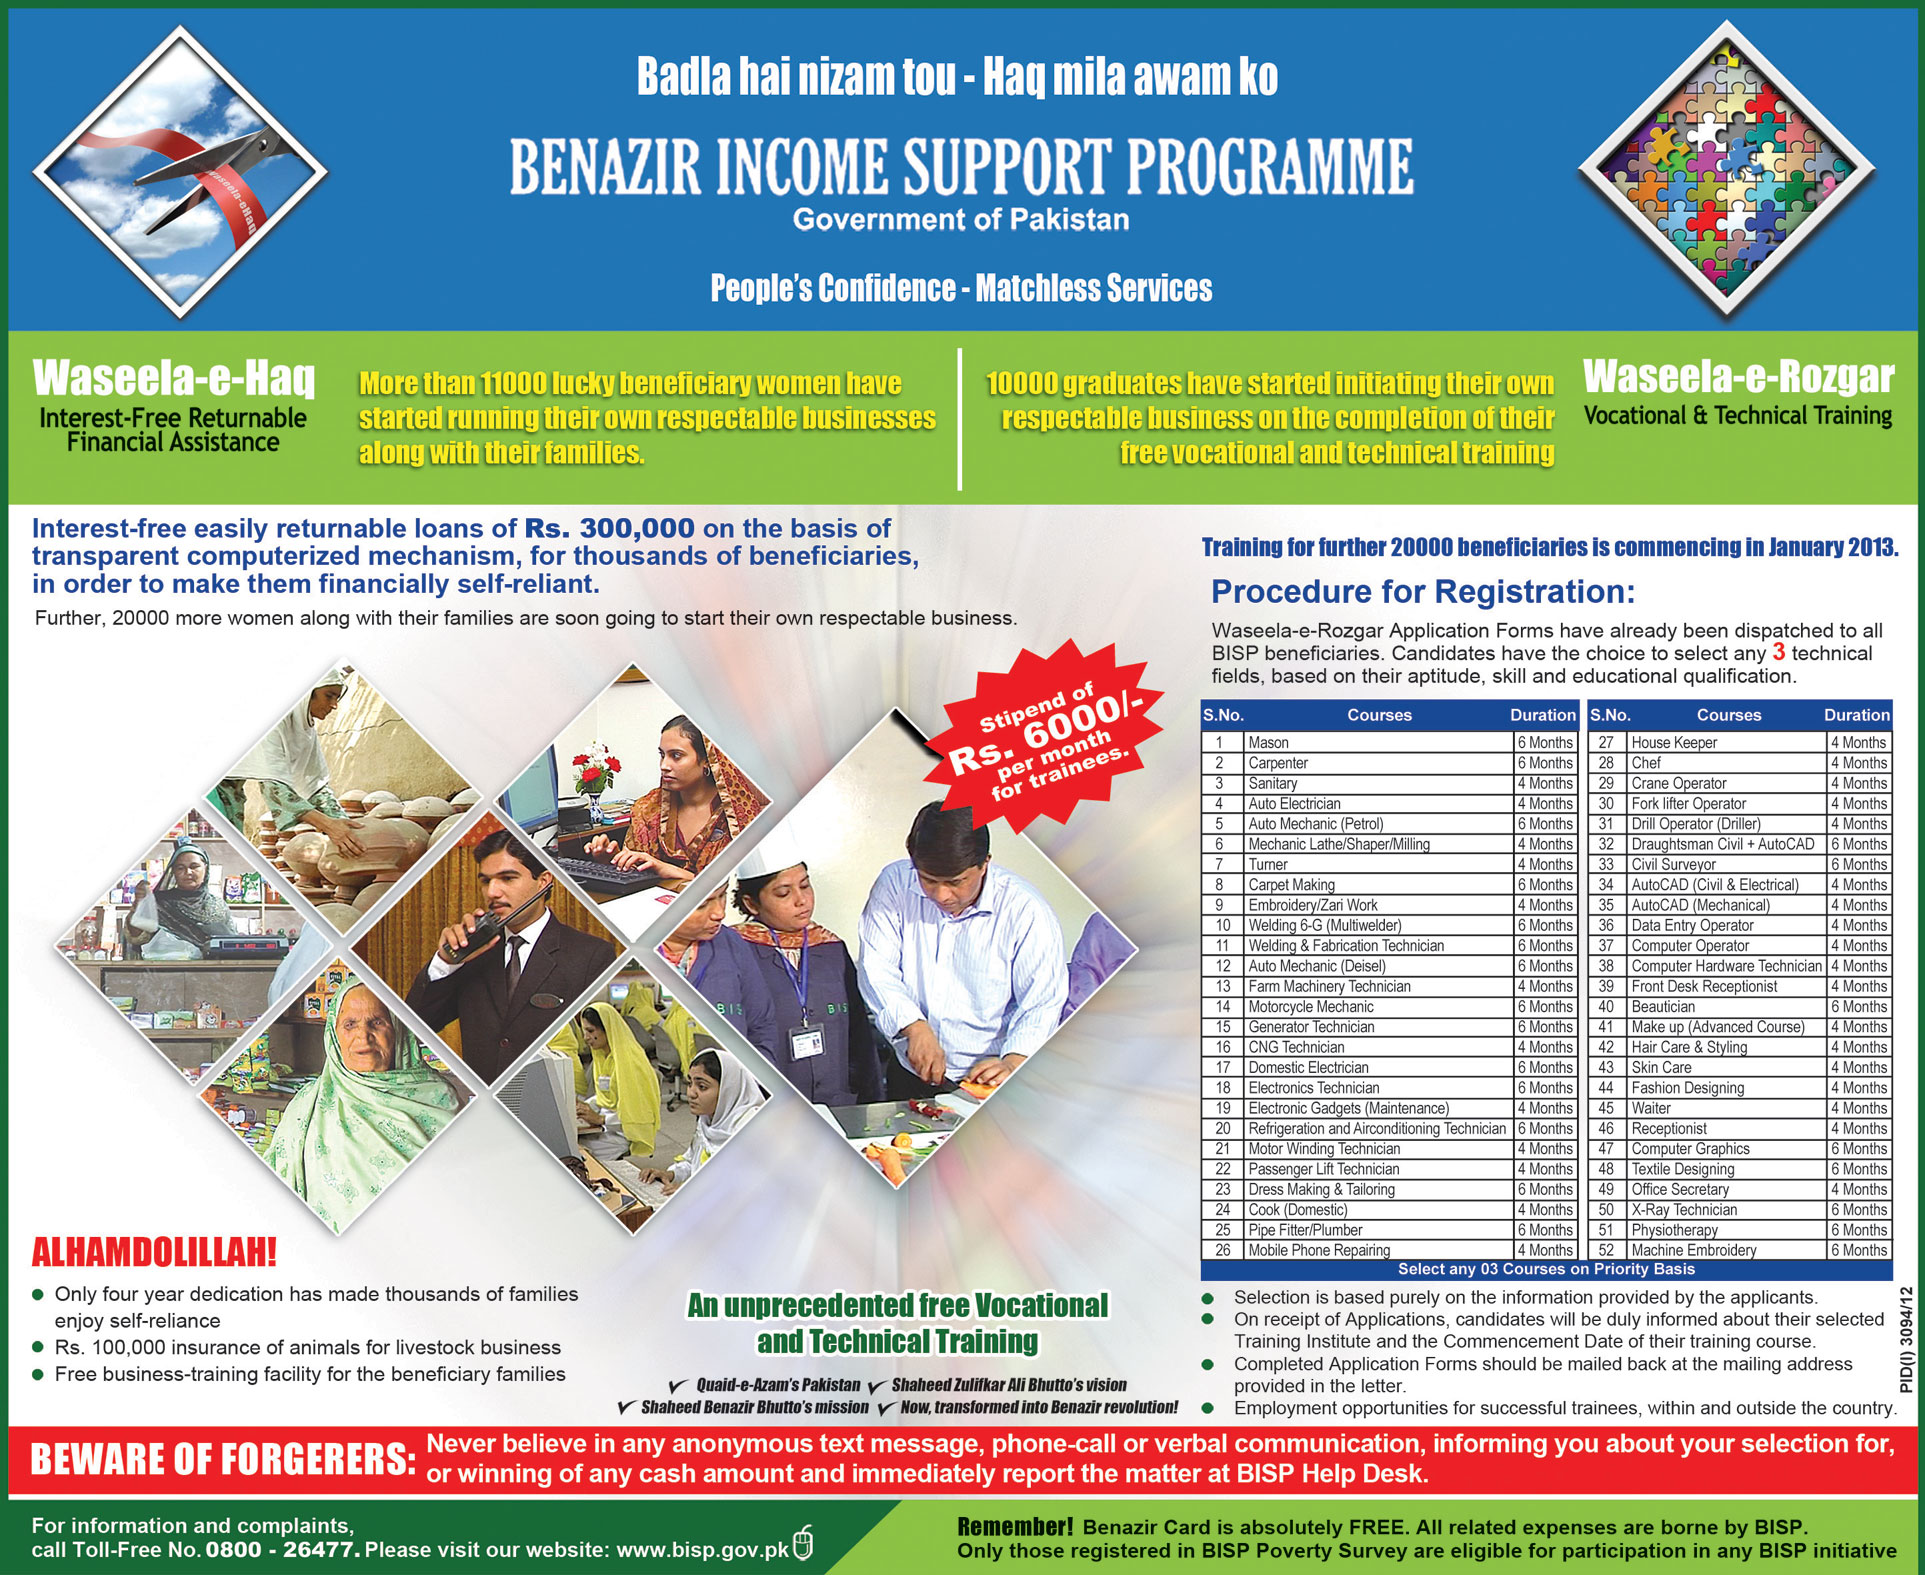 BISP Waseela-e-Rozgar 2013 Registration - Free Vocational & Technical Training